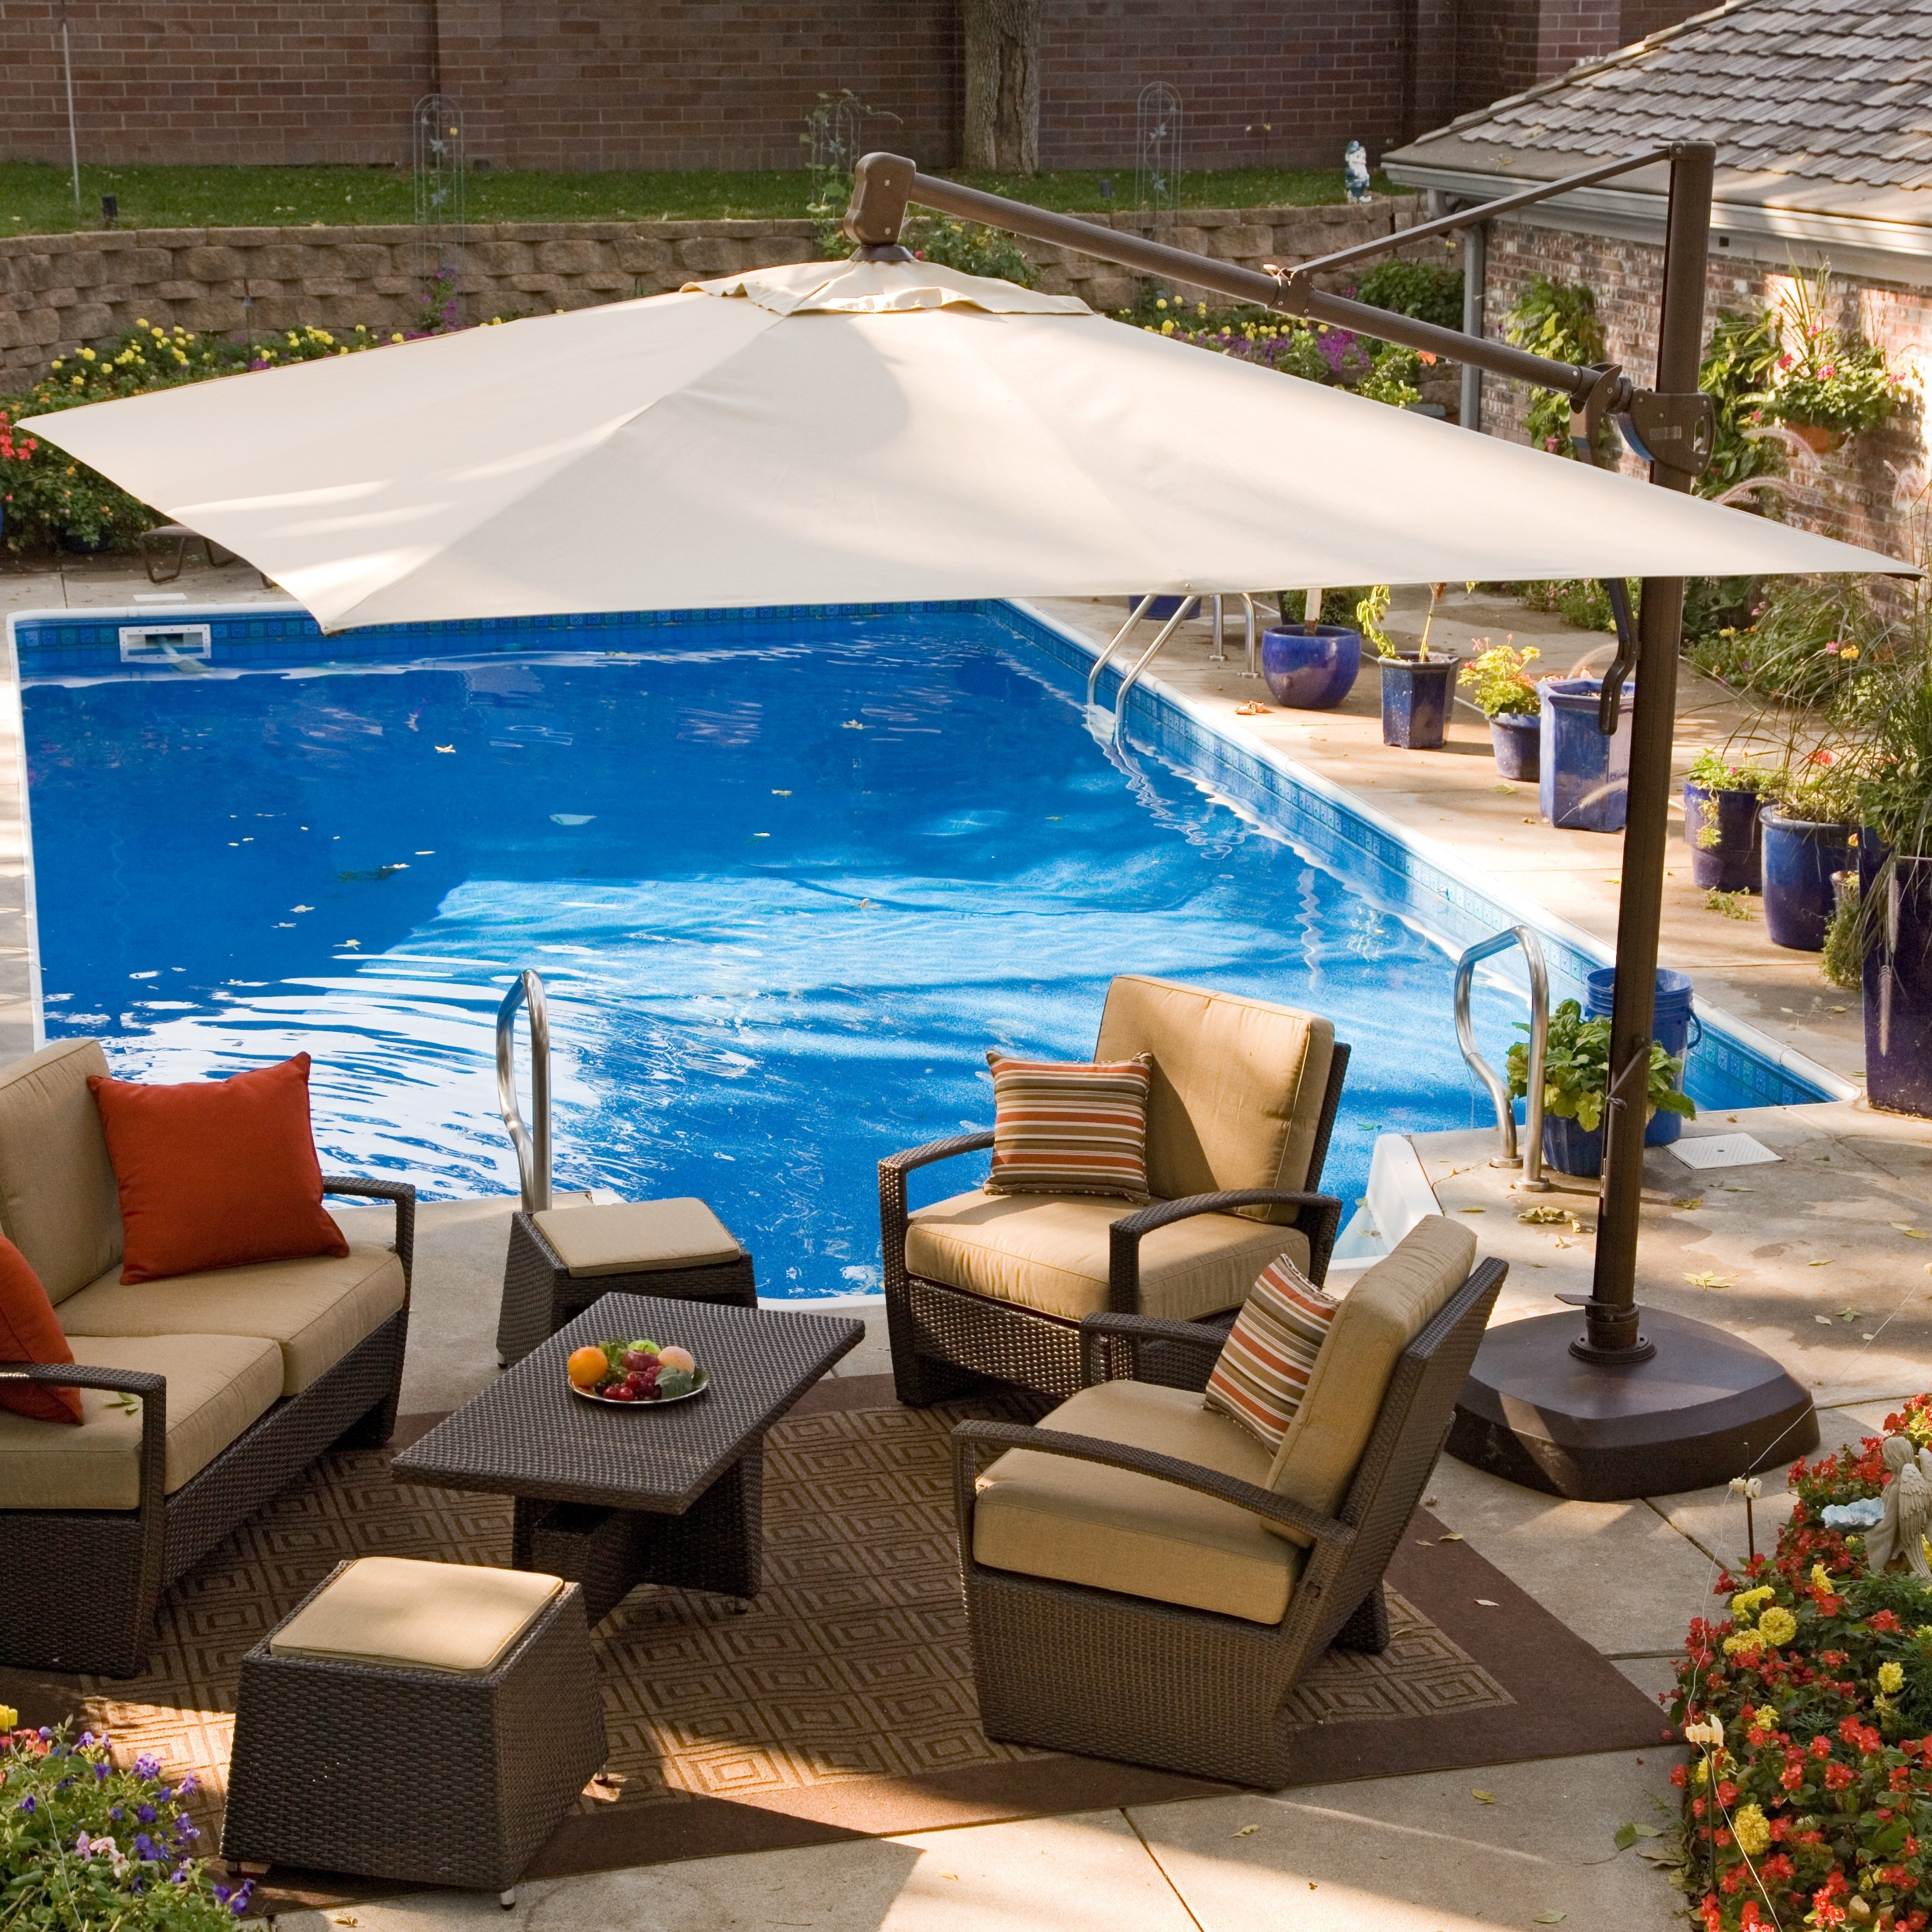 Most Recently Released Patio Ideas: Heavy Duty Patio Umbrella With White Patio Umbrella And Within Patio Conversation Sets With Umbrella (View 9 of 20)